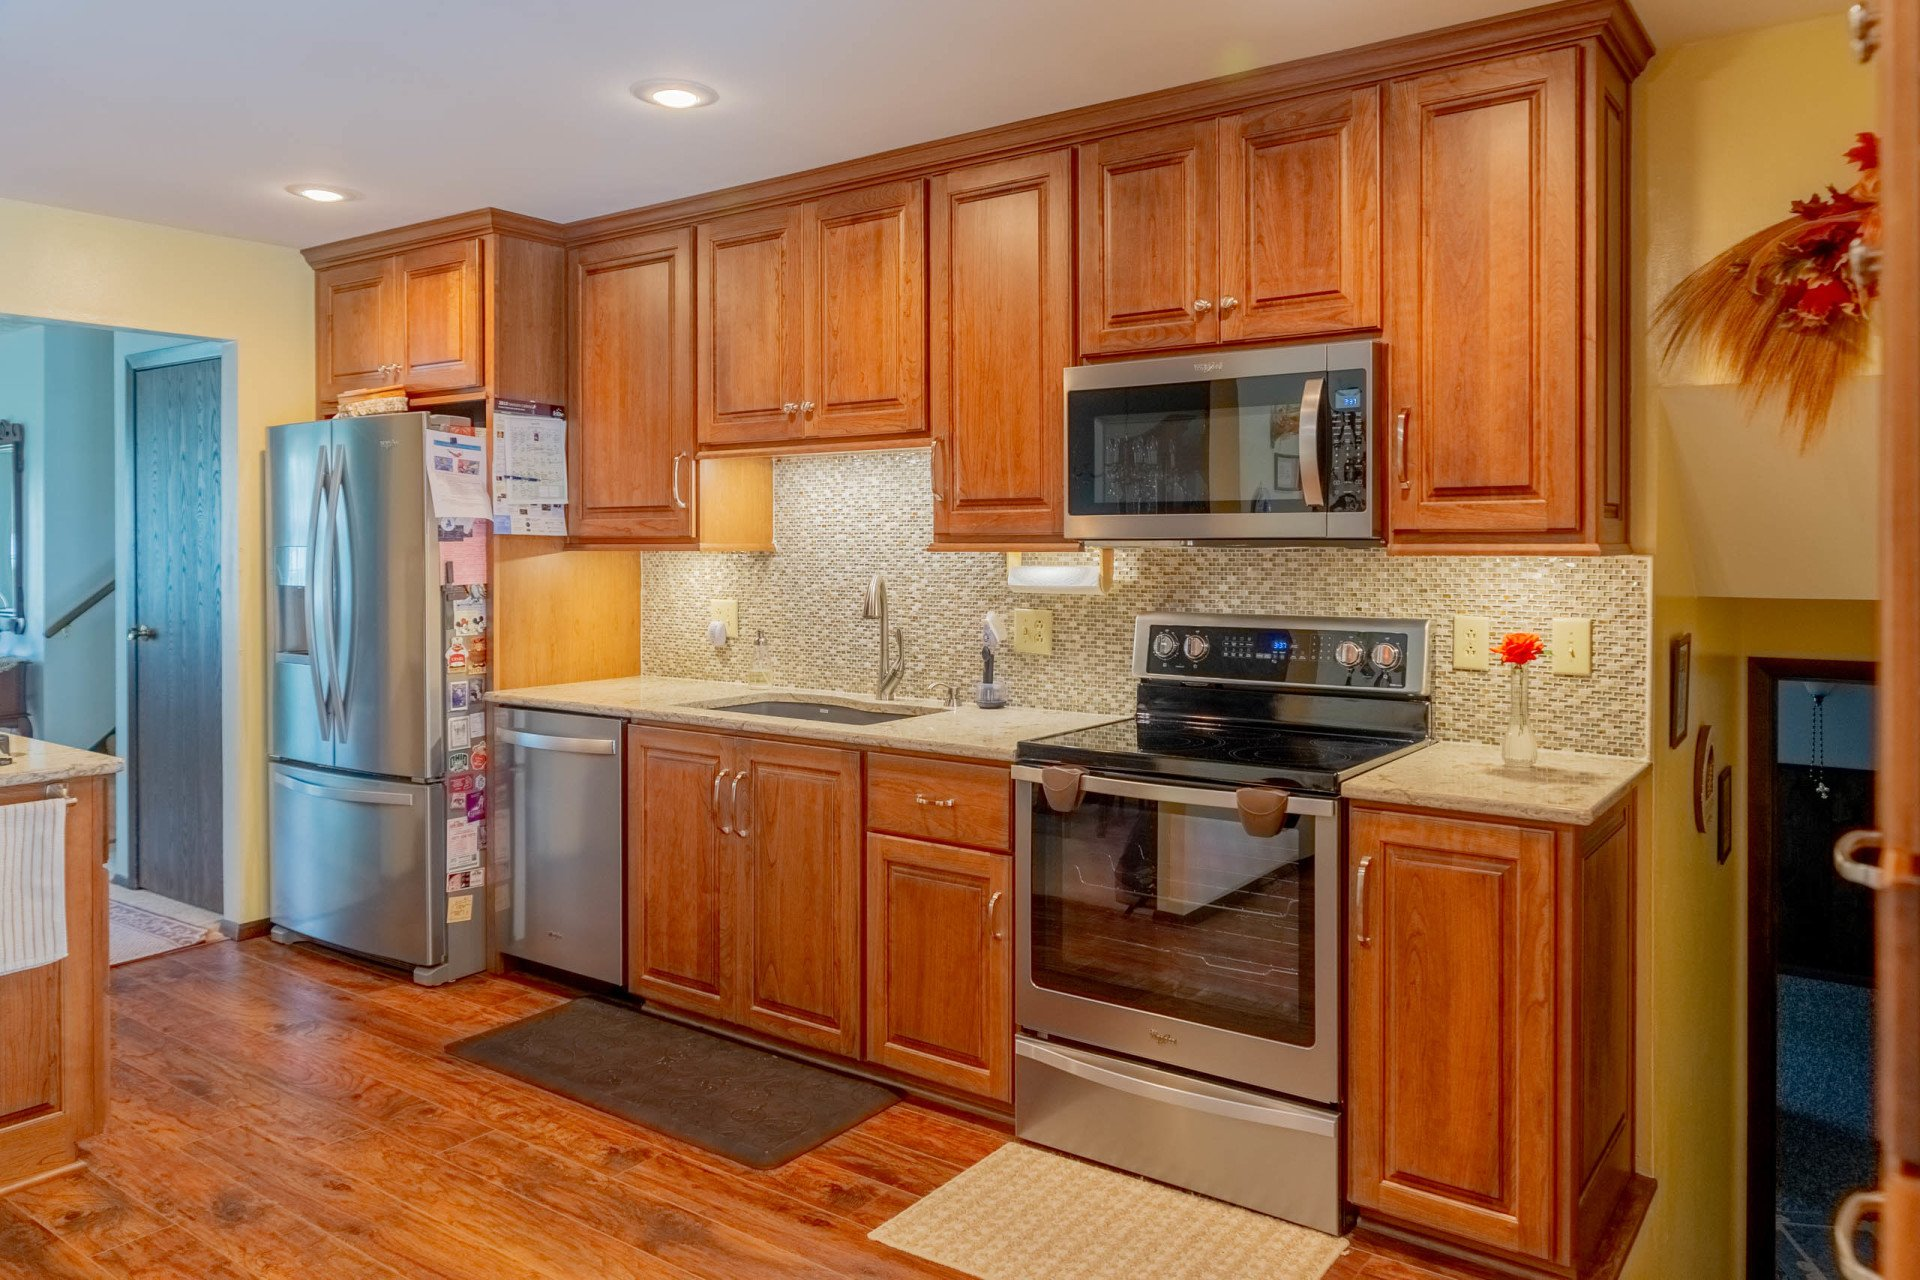 kitchen cabinets dayton ohio turquoise rugs remodeling in beavercreek and centerville oh